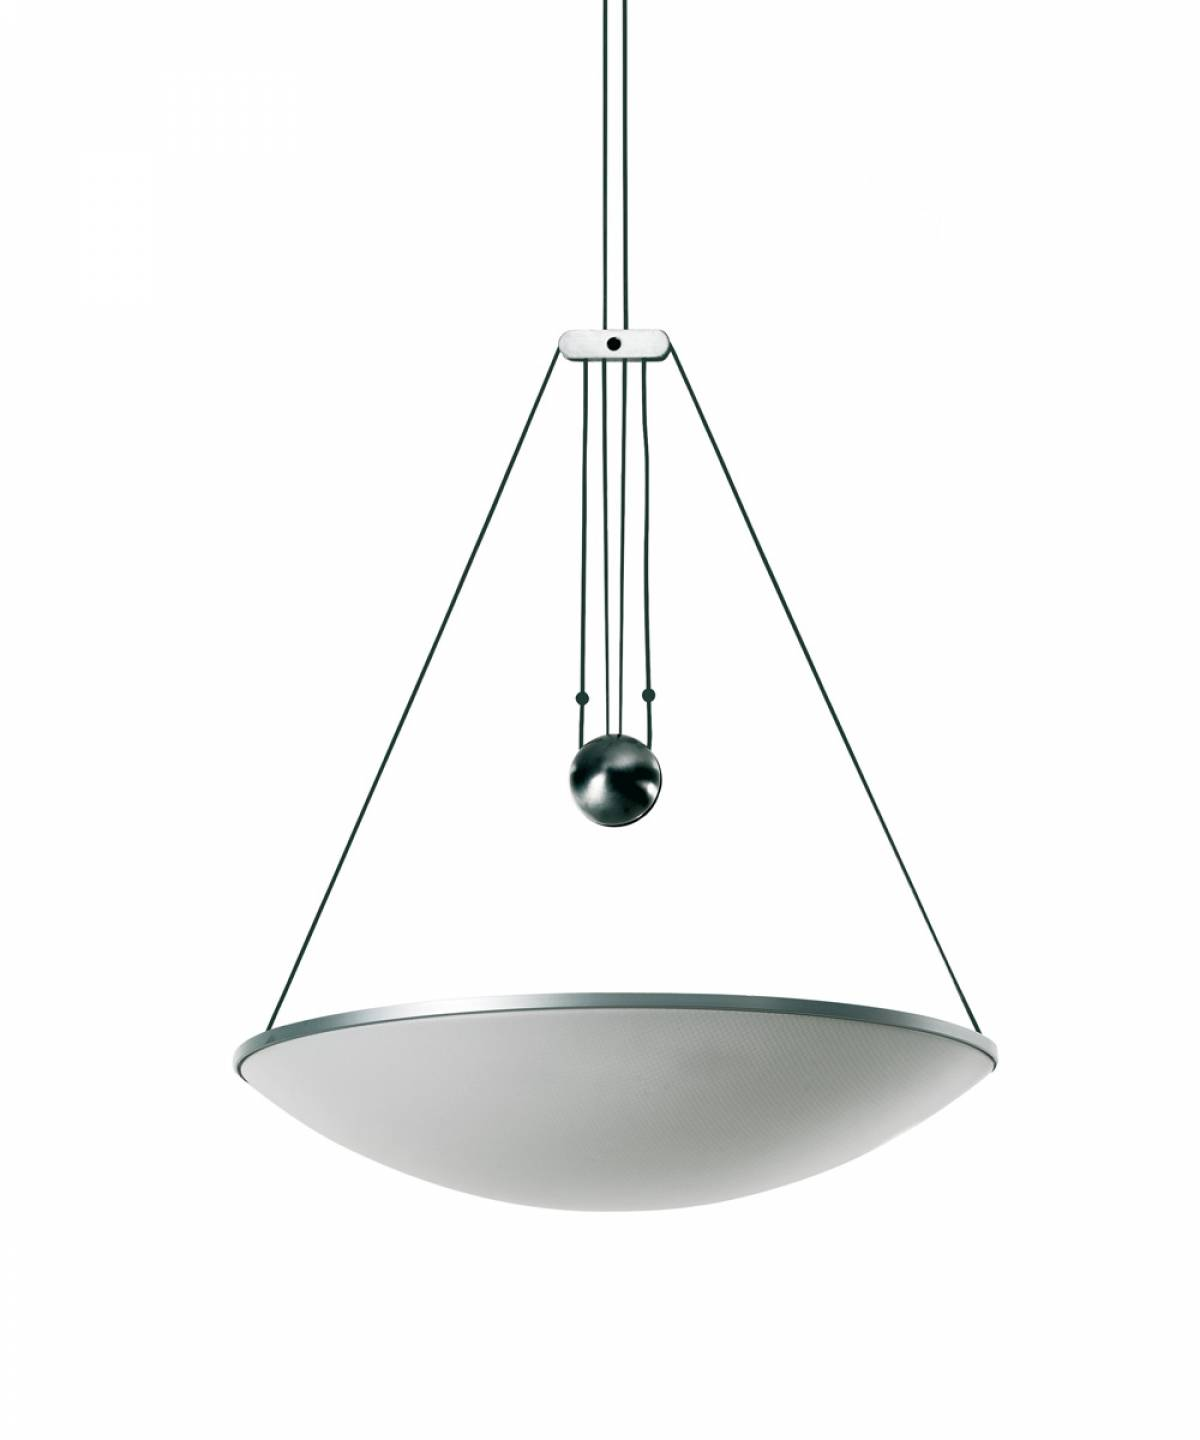 1 Trama suspension lamp Luceplan